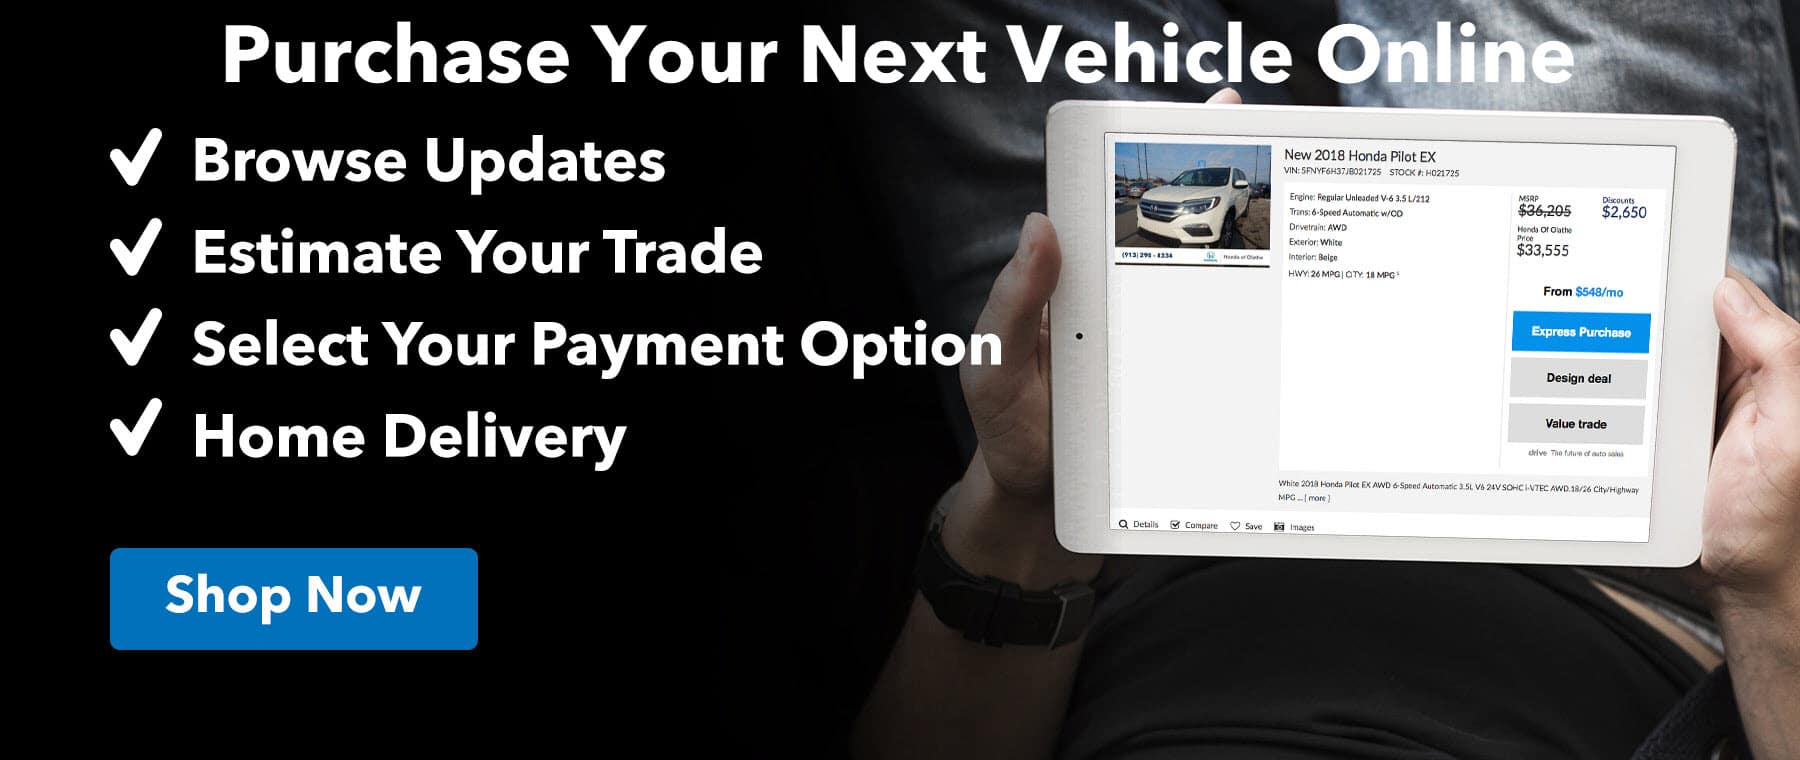 Purchase Your Next Vehicle Online at Legends Honda